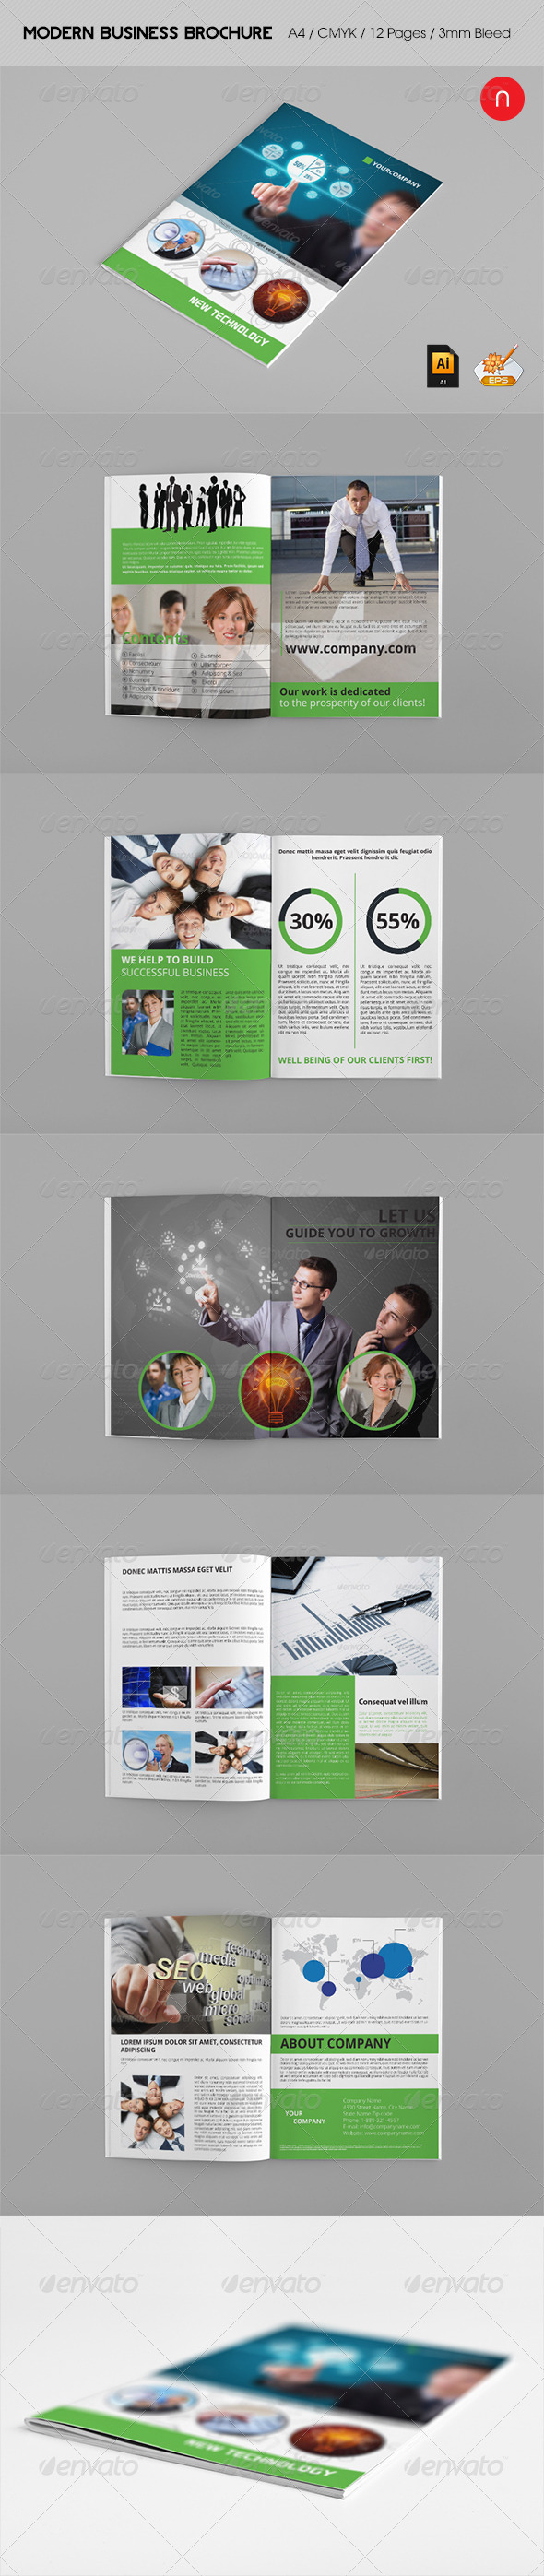 Business Brochure - New Technology - Brochures Print Templates